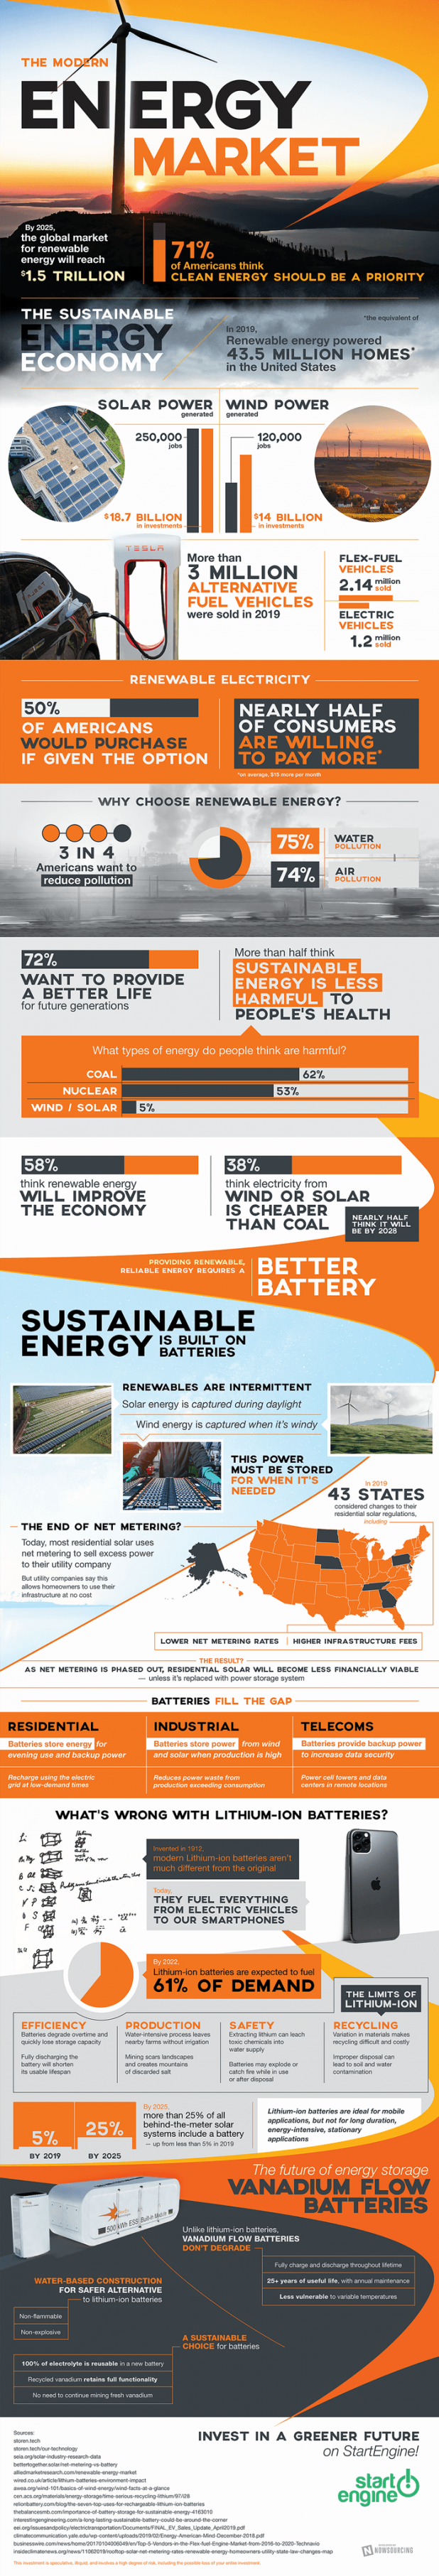 Energy Market and 6 Types of Renewable Energy [Infographic]